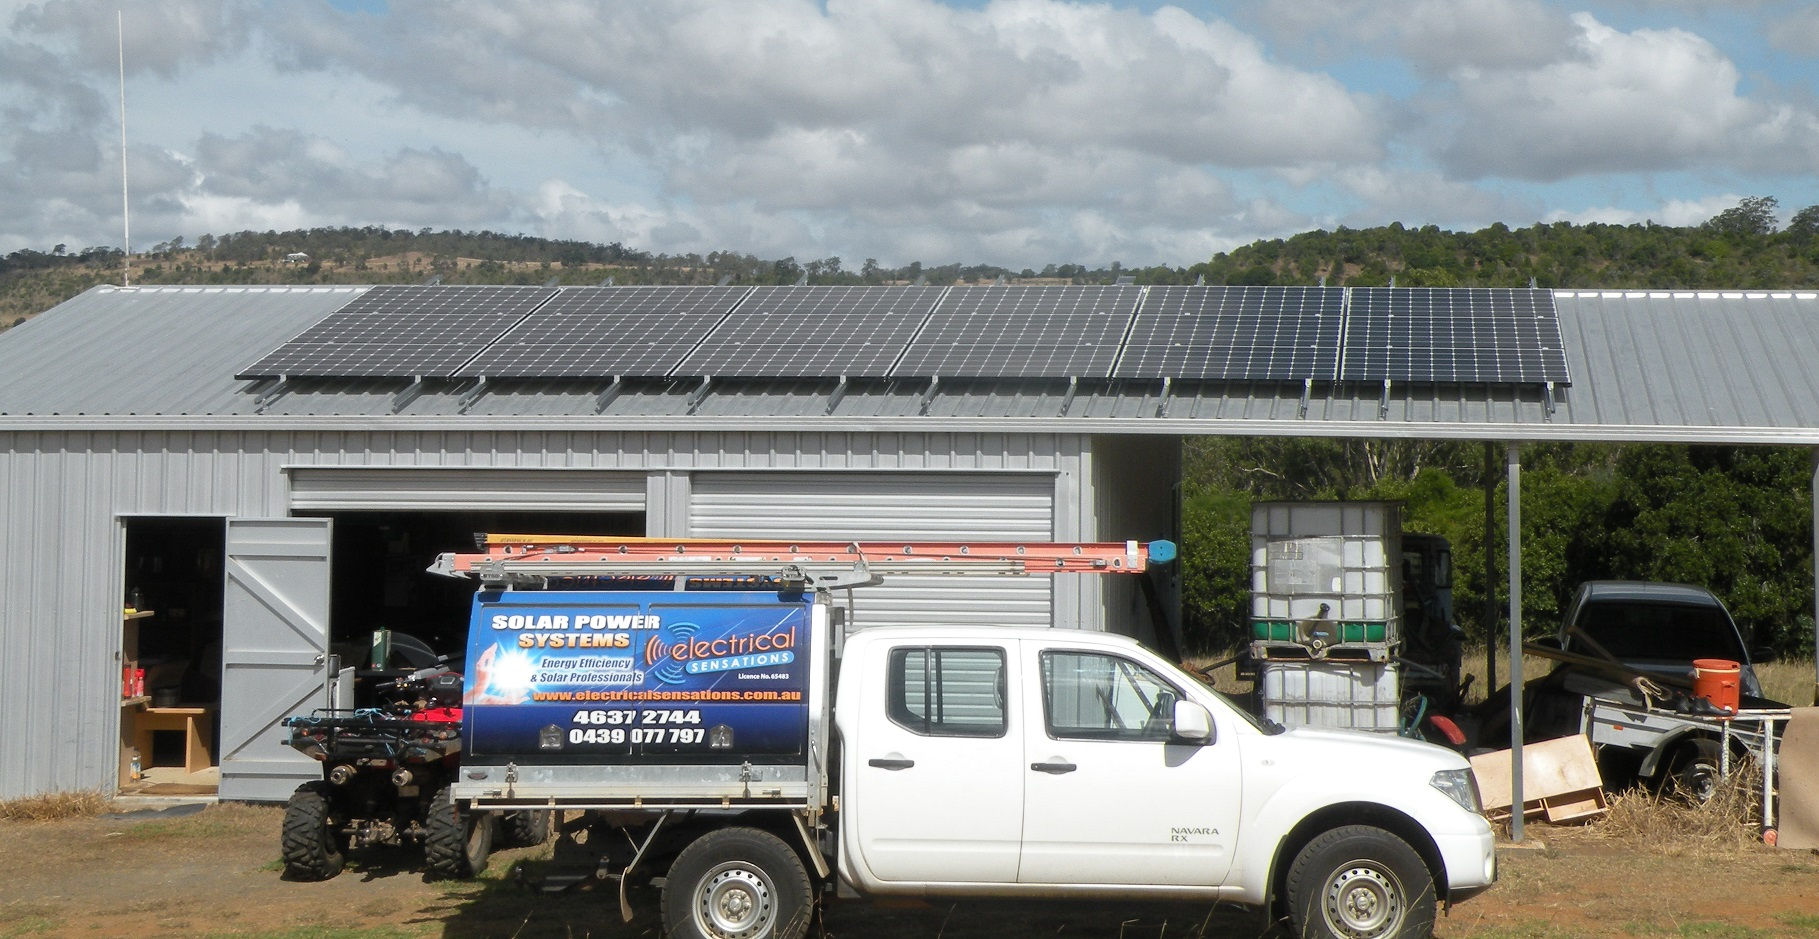 Remote area solar power systems demand the ultimate in reliability and performance. This 5.6kW system consisting of 18 x 315W LG Noen solar panels, an Ecoult battery and a SP Pro inverter provides outstanding solar production, reliability and longevity for the owner and his family.